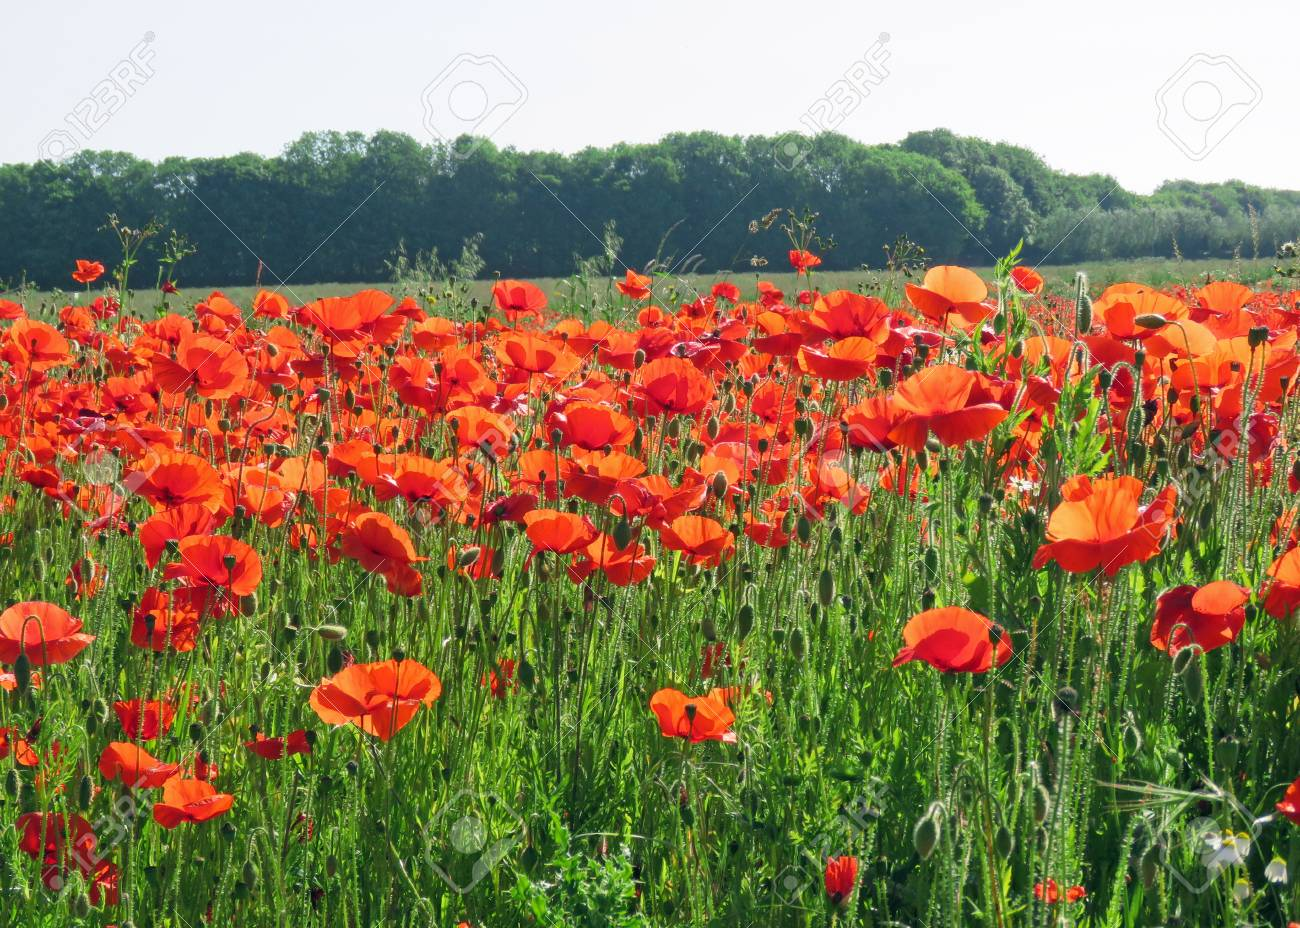 A meadow full of poppies and grasses in rural English countryside Standard-Bild - 81835453